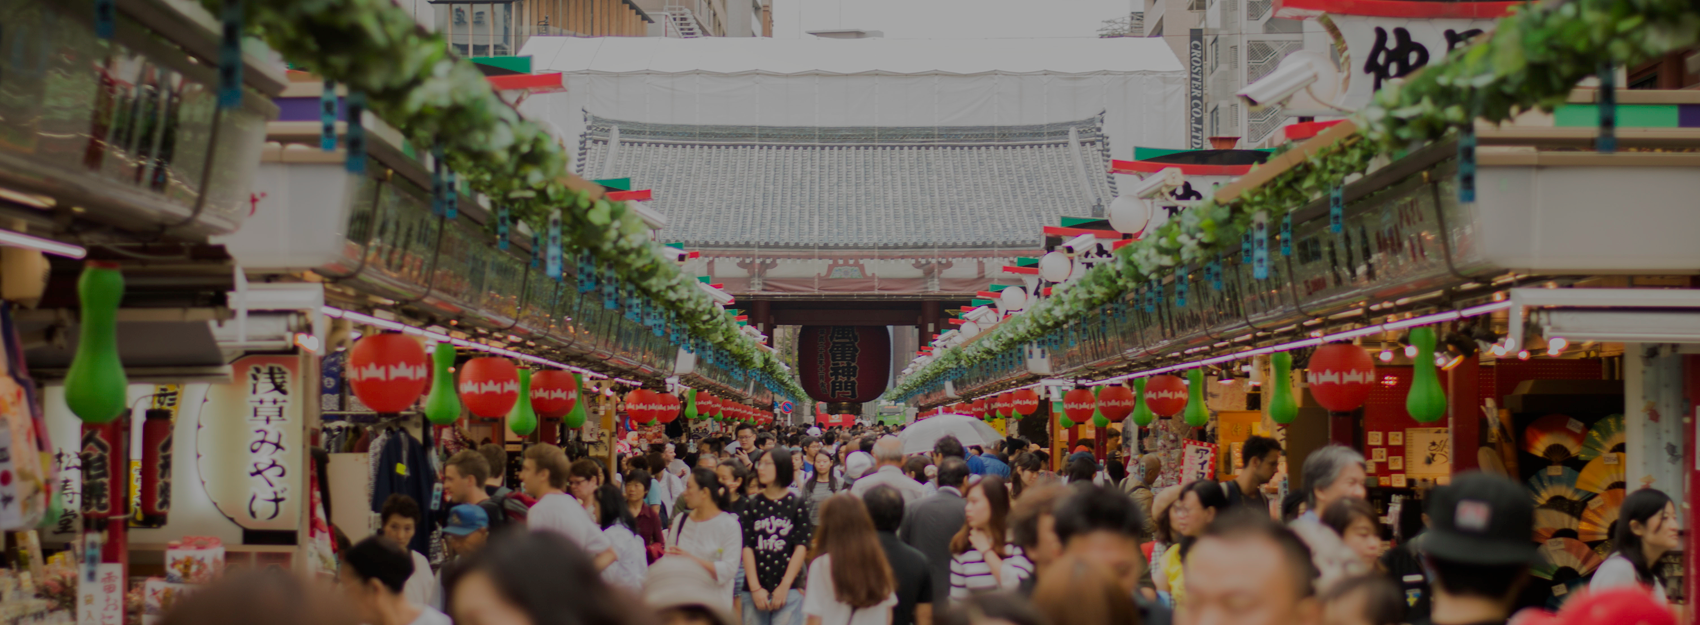 Tokyo - Language & Culture | IES Abroad | Study Abroad